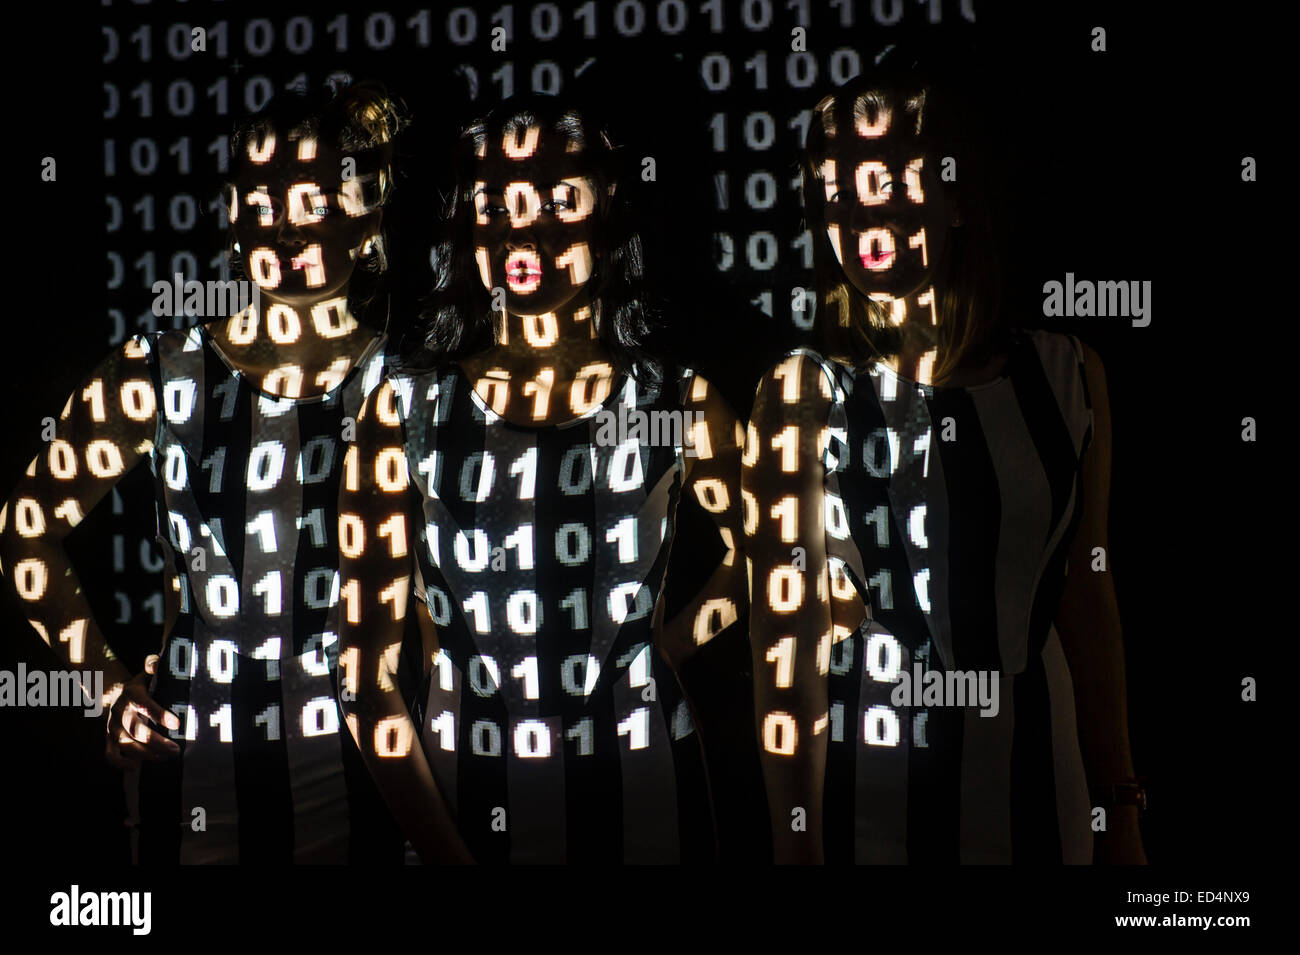 Digital Art: Conceptual image for cyber terrorism or cybercrime cyber crime - a group of 3 three young women girls - Stock Image